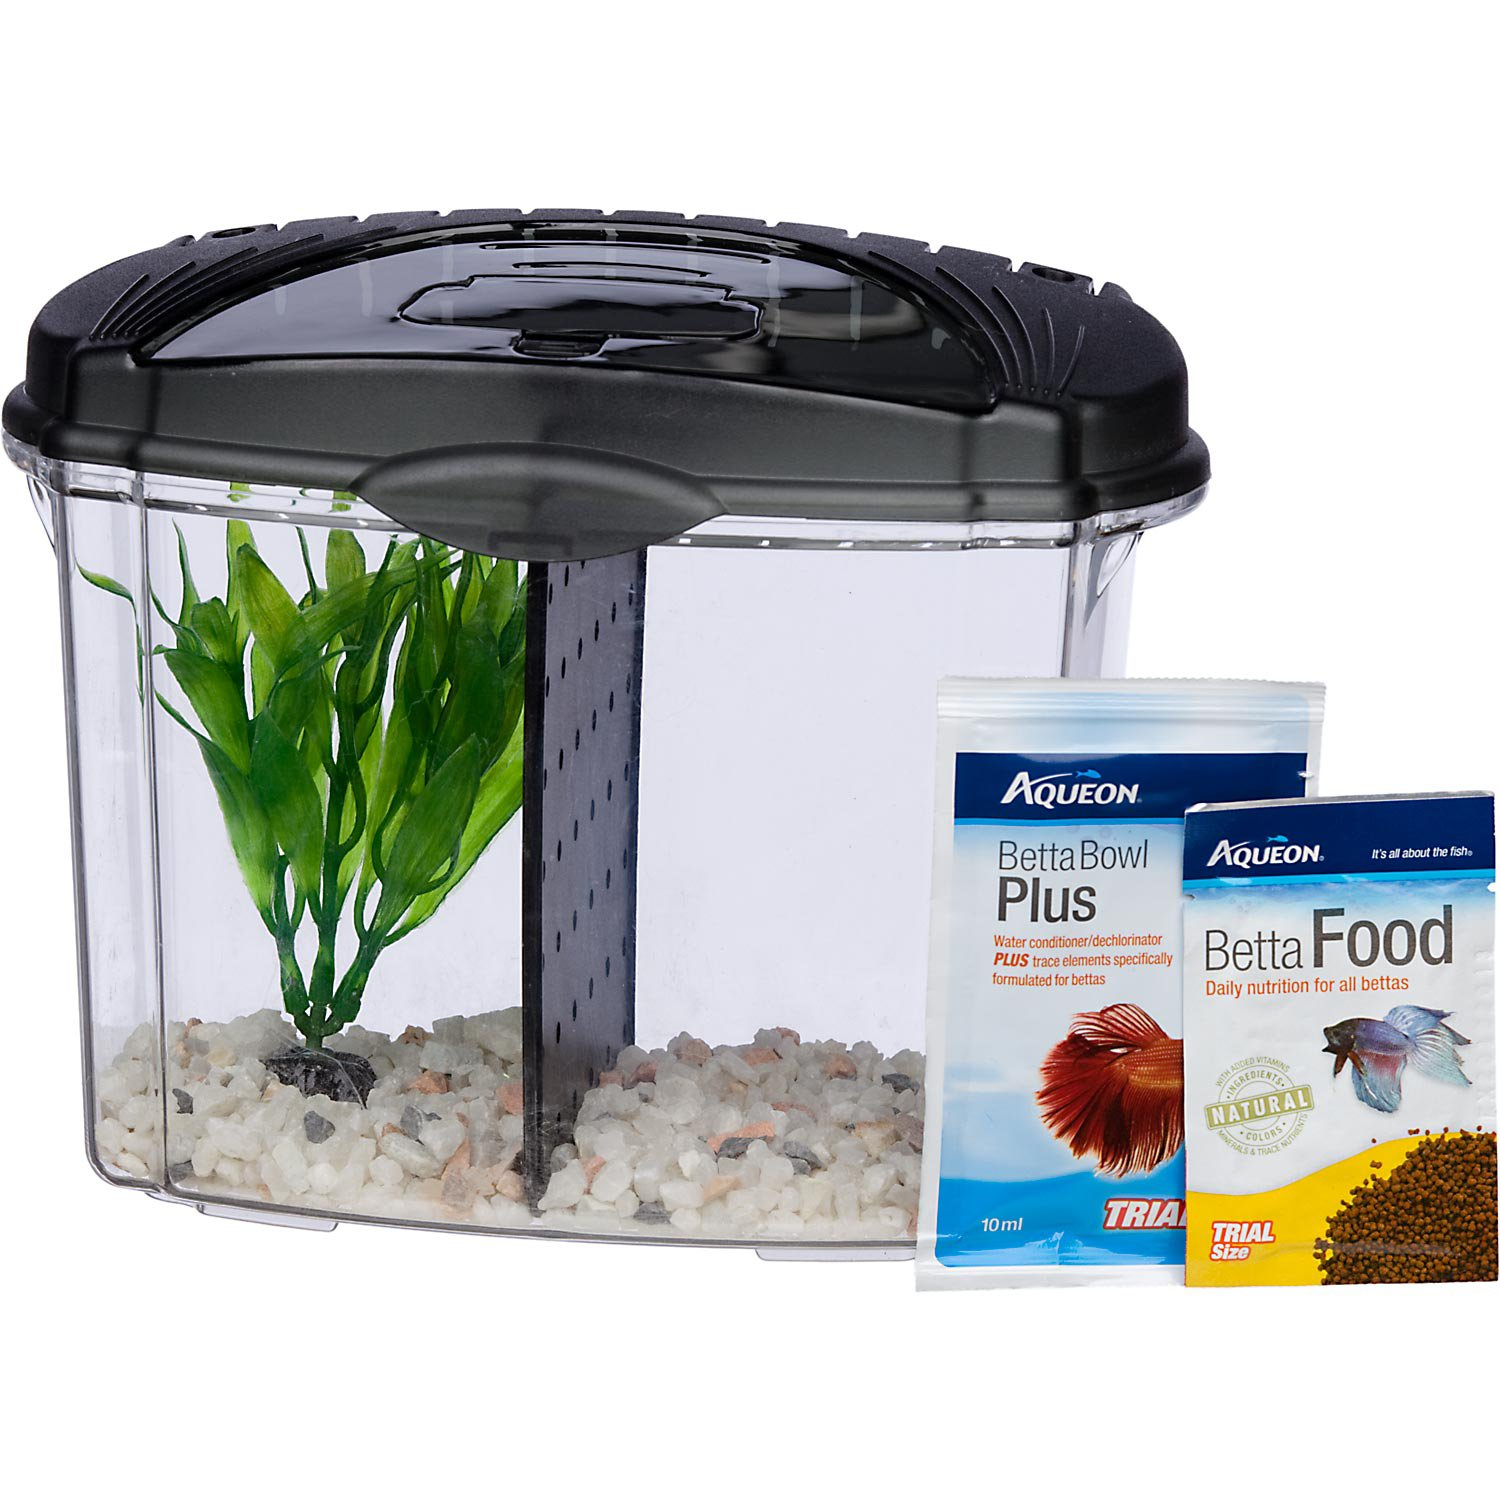 Aqueon betta bowl aquarium kit in black petco for Betta fish tanks petco